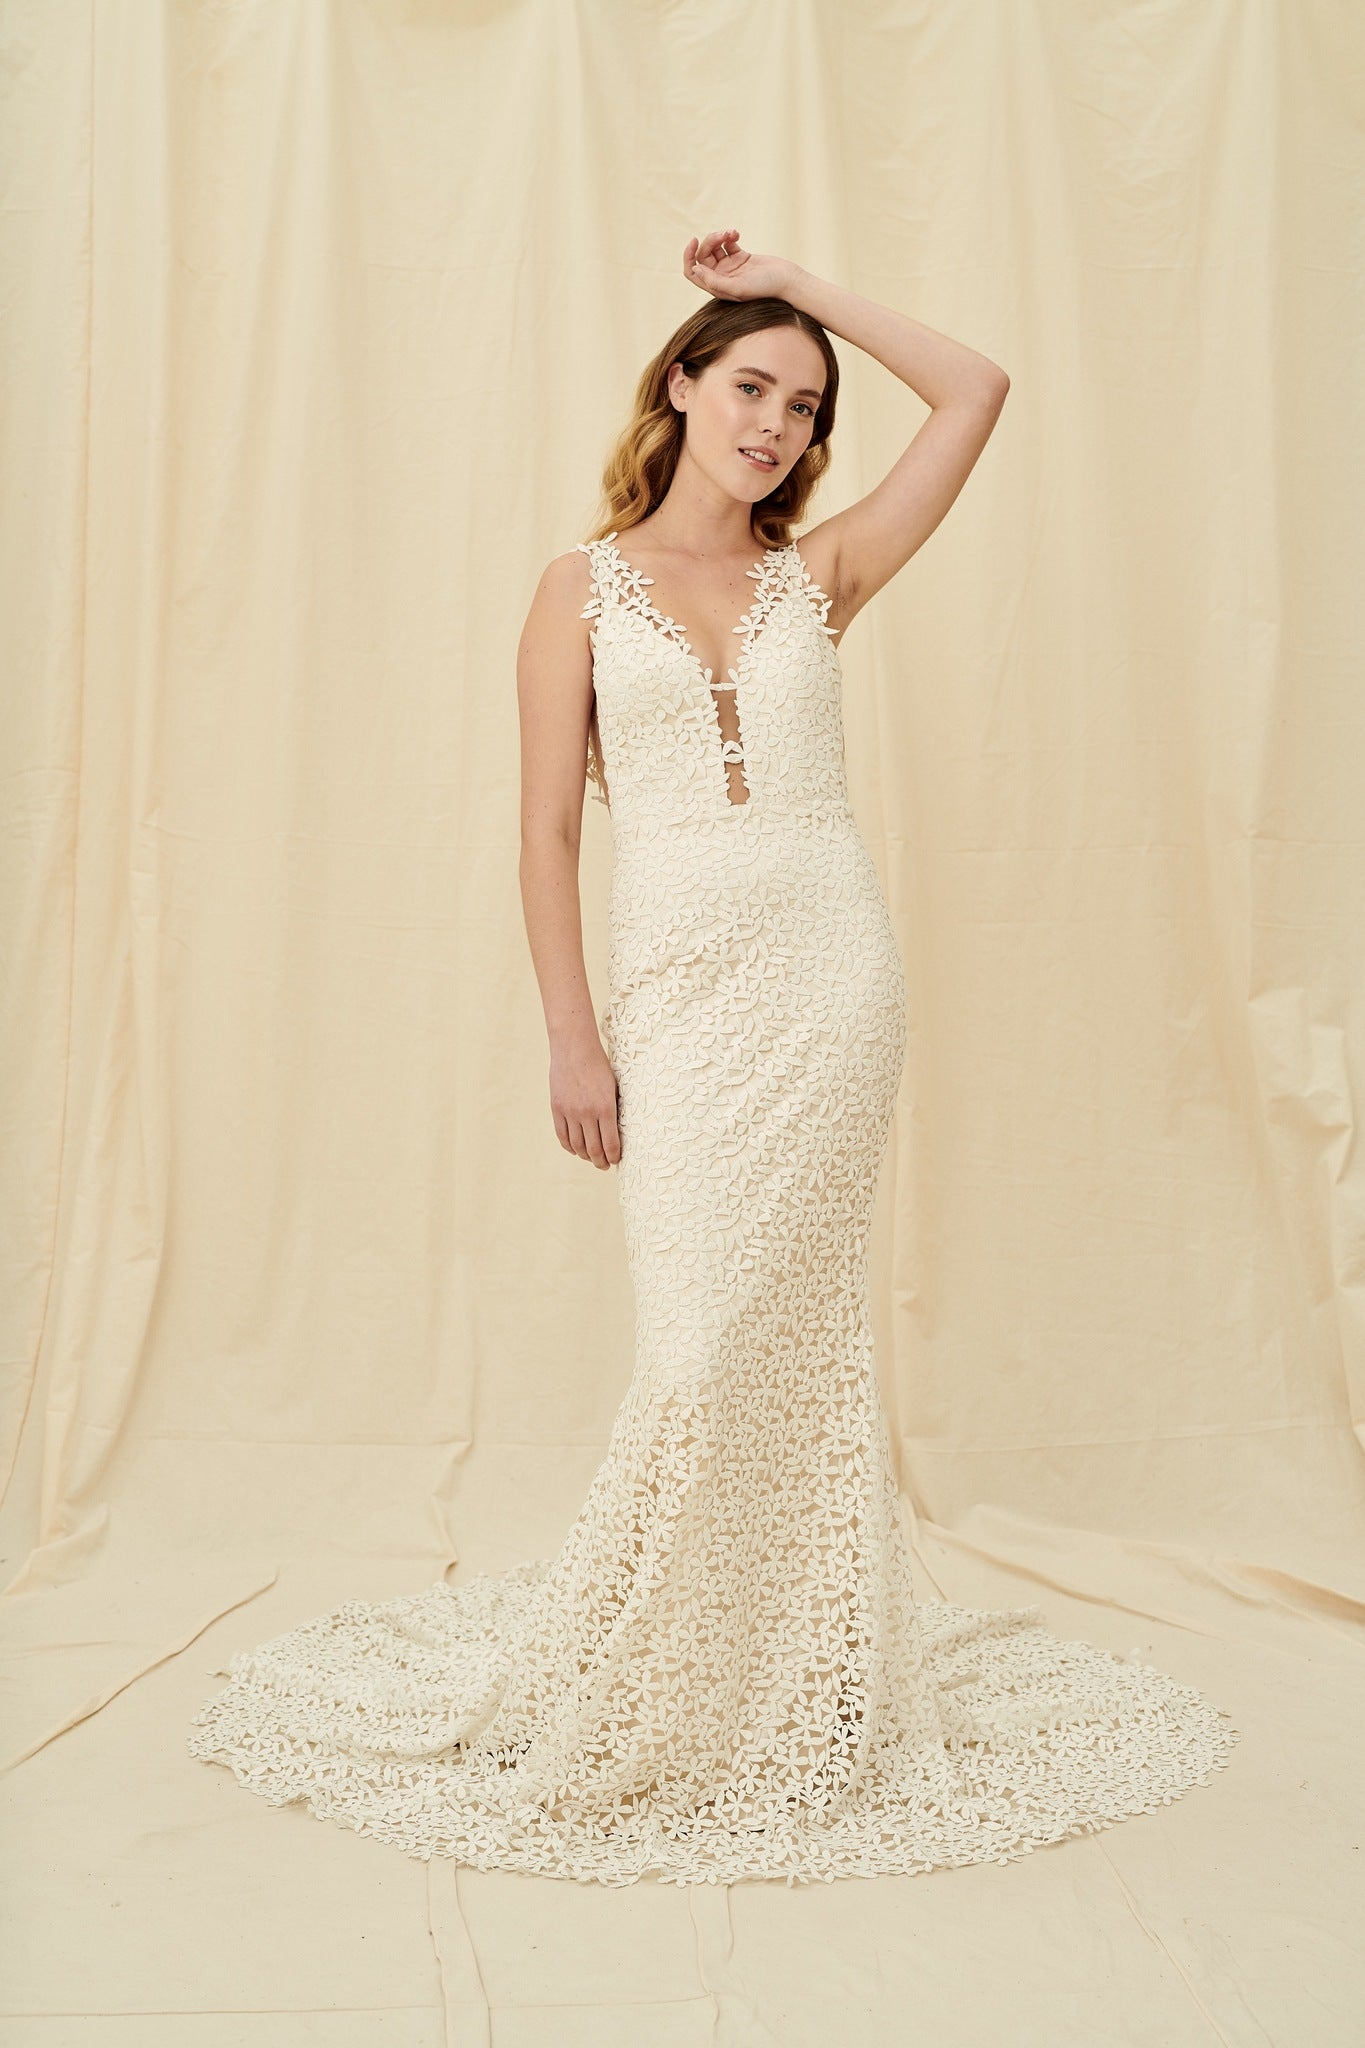 Mermaid wedding dress with all-over flower lace, a dramatic train, and a low back